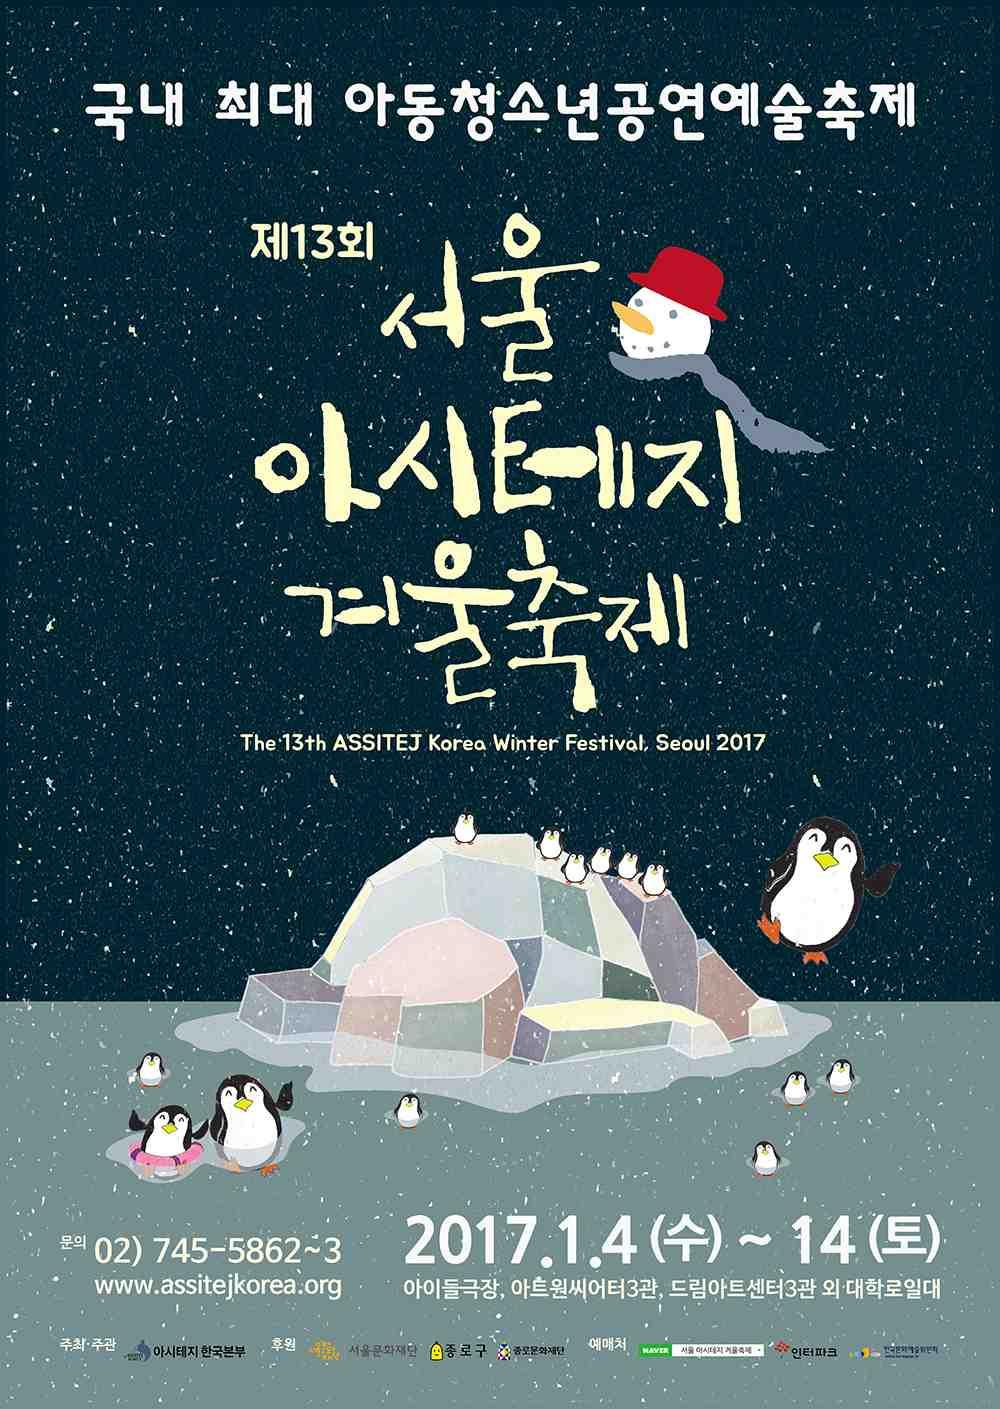 Festival Watch the Best Children s Plays from 2016! The 13th ASSISTEJ Korea Winter Festival Place Jan. 4 (Wed) ~ Jan.